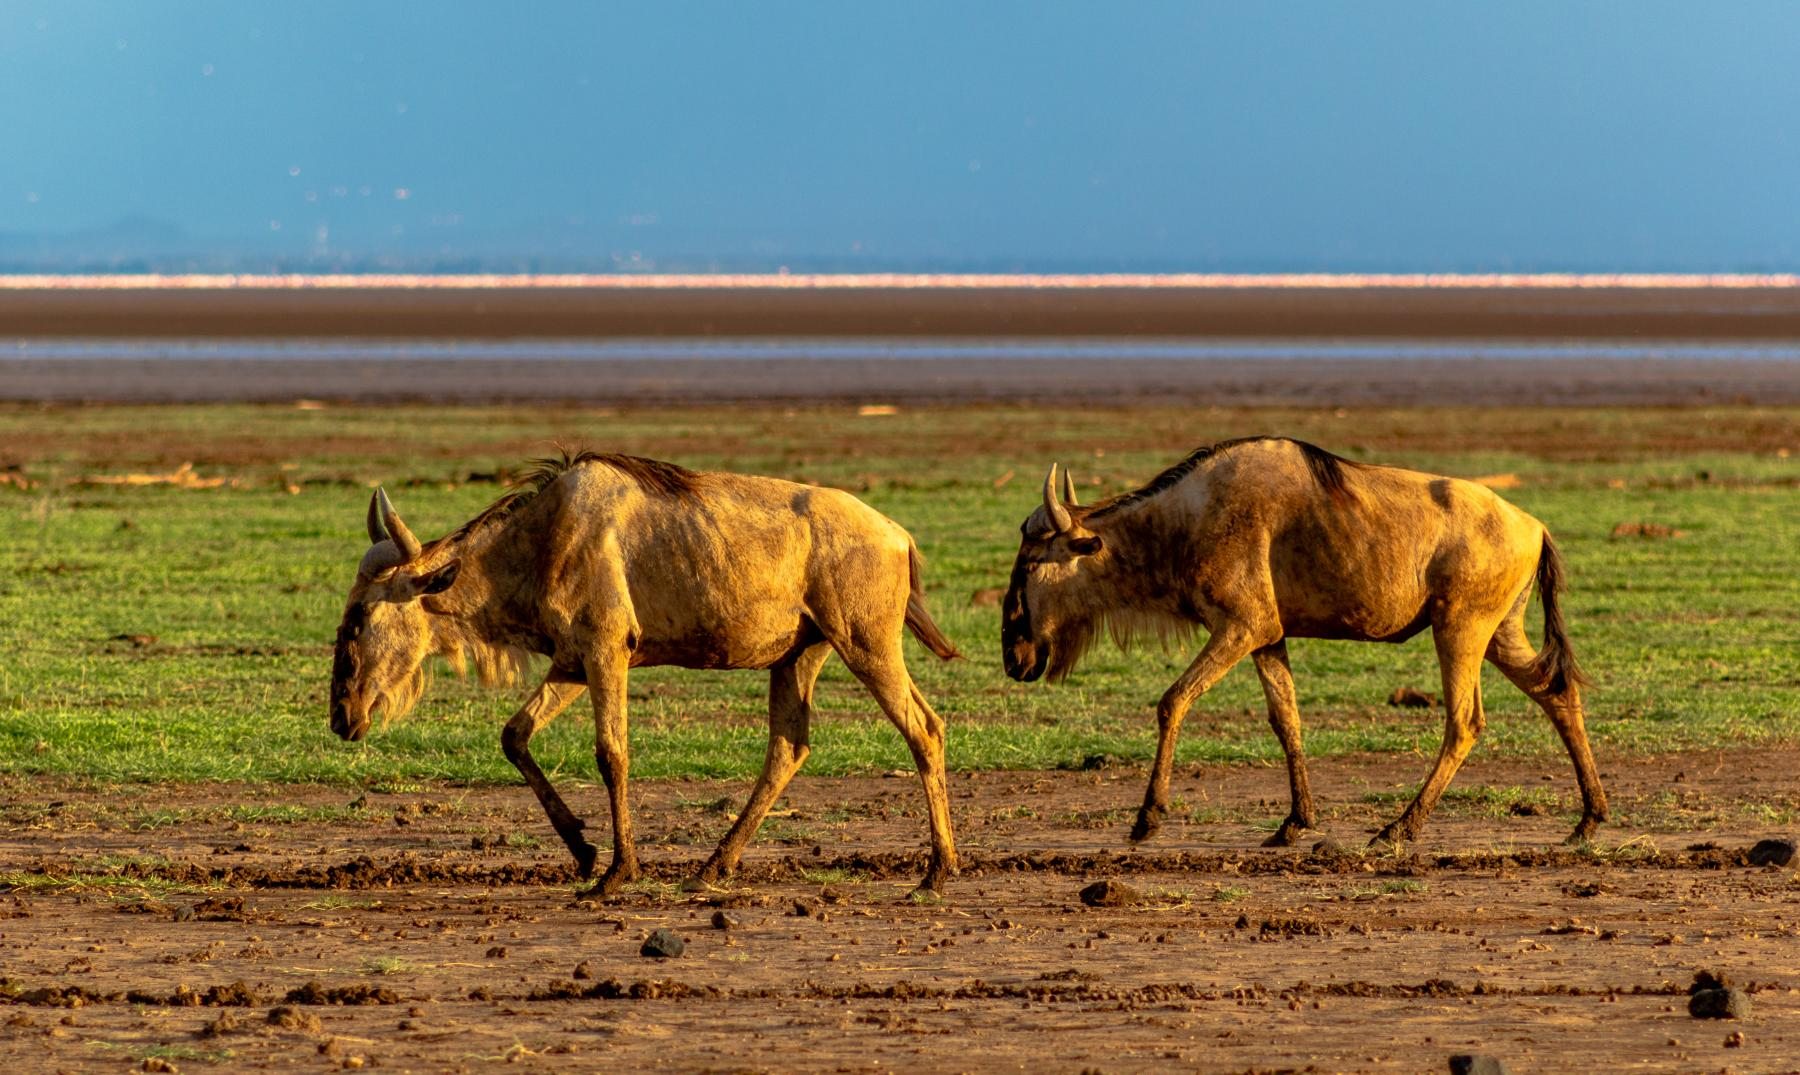 Lake Manyara - Wildebeests